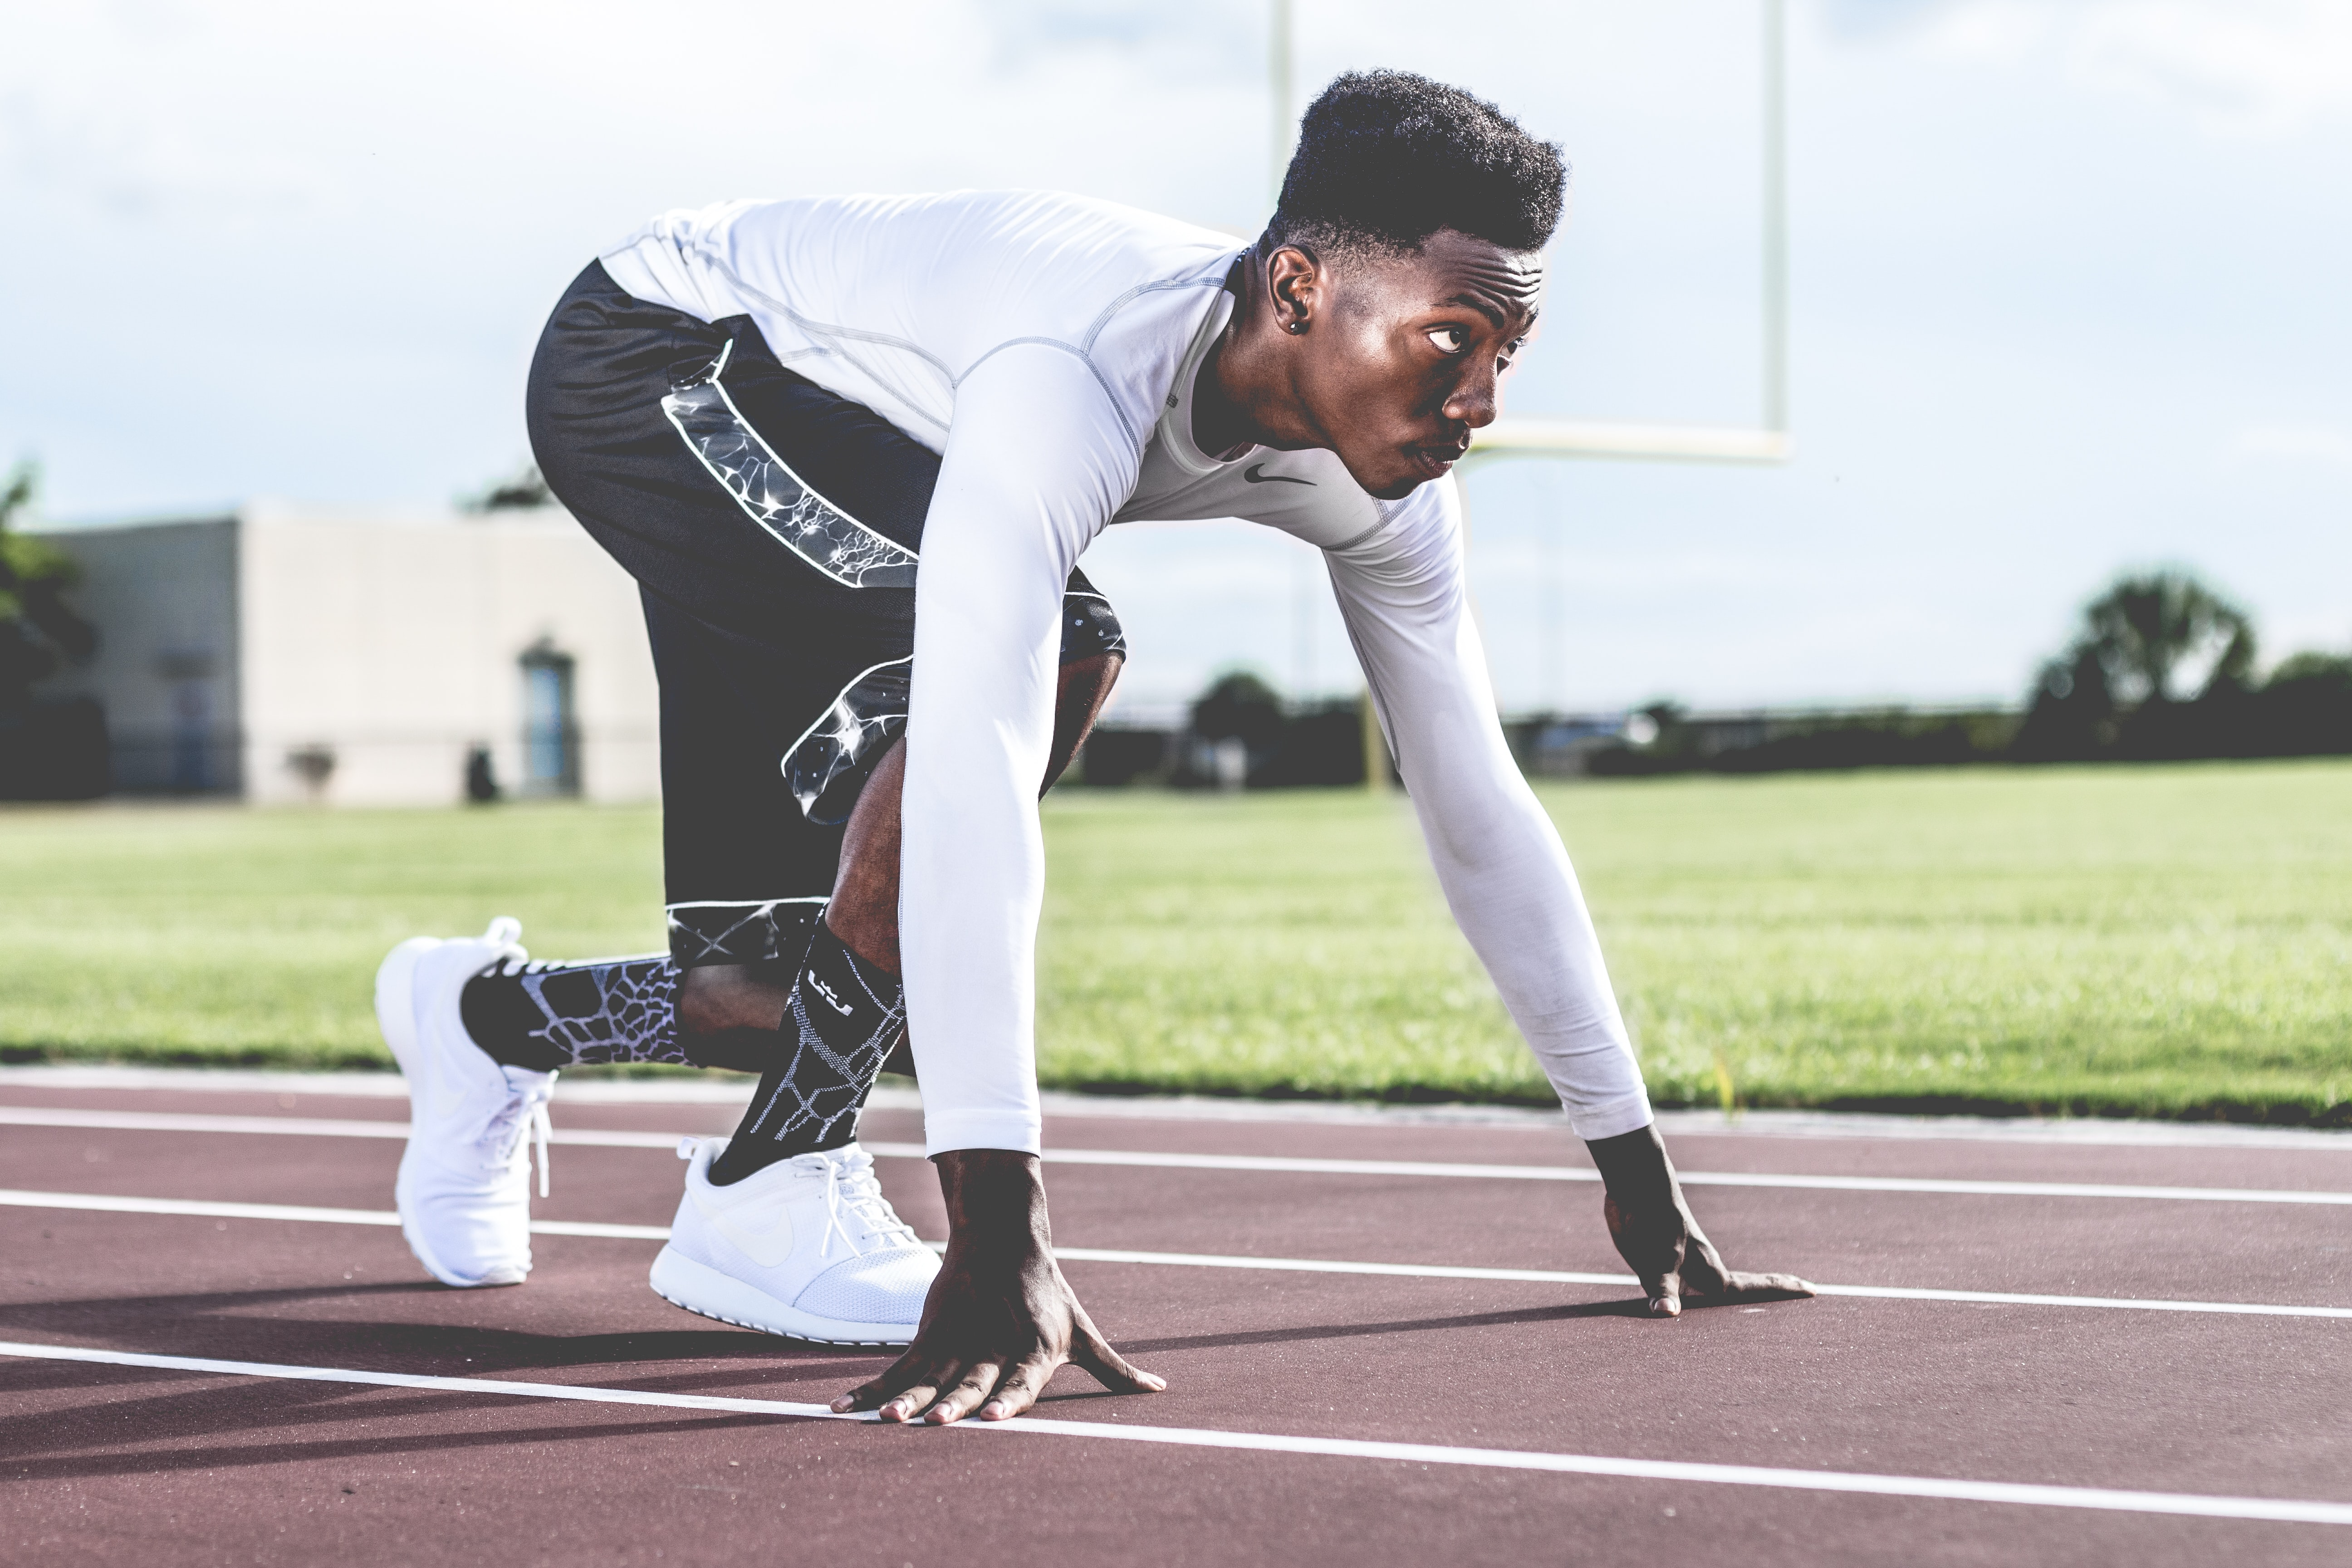 man ready to sprint on field track